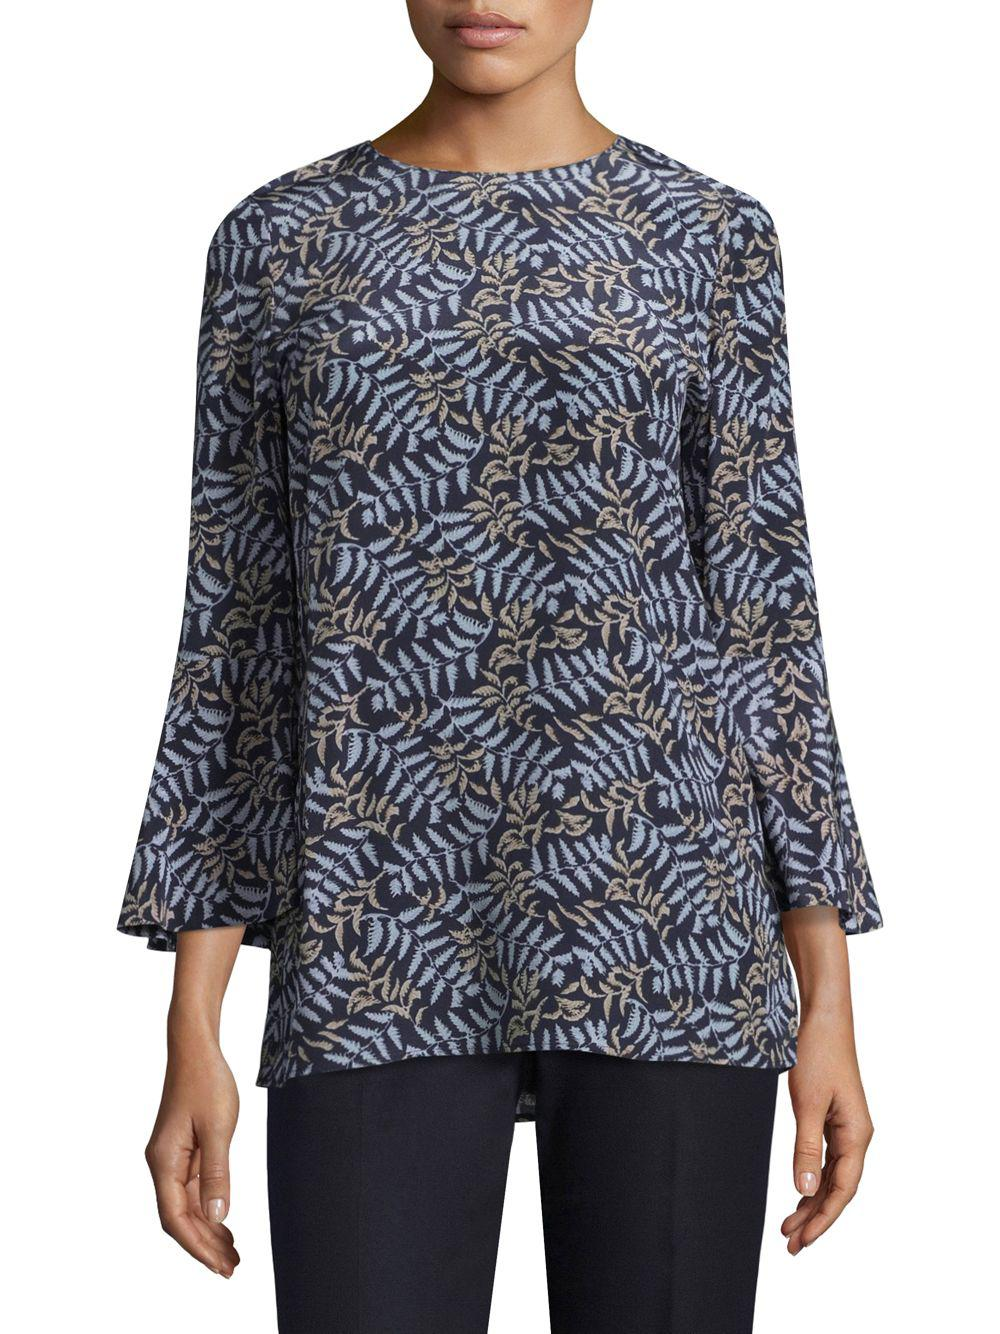 e7cd3db8a7f18 Lyst - Lafayette 148 New York Sidra Printed Blouse in Blue - Save 42%